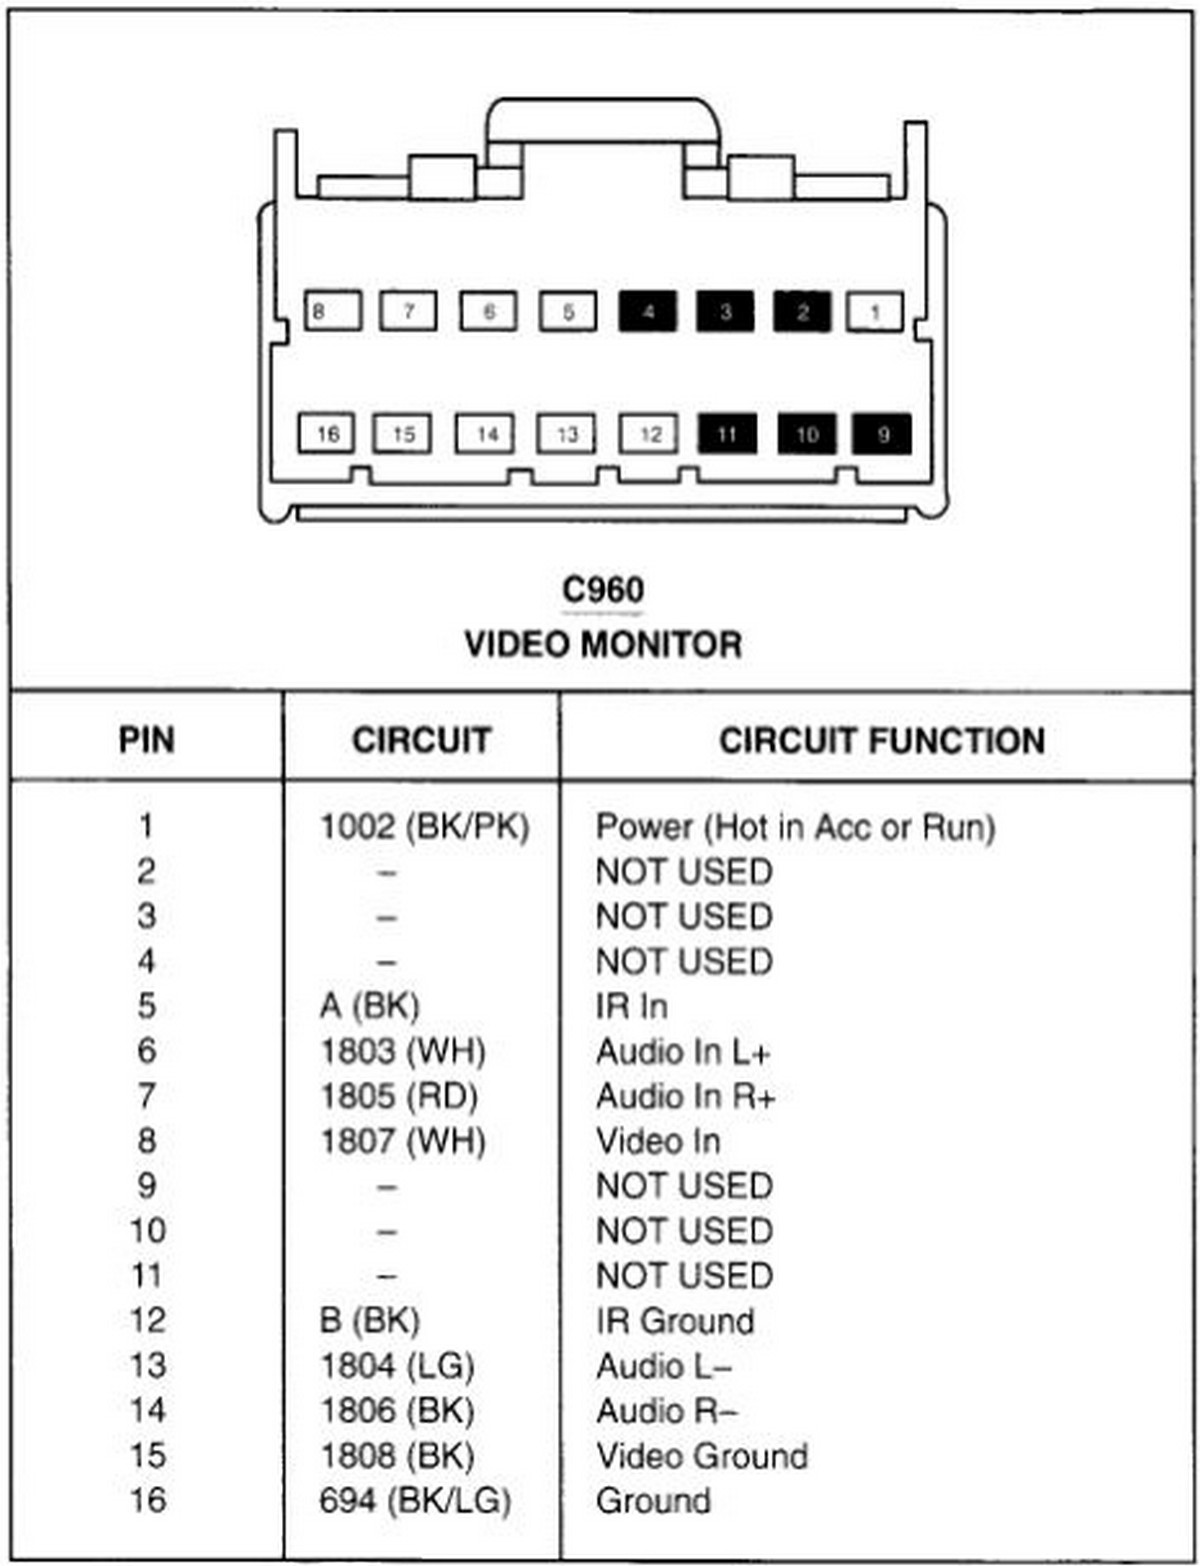 2004 ford explorer audio wiring diagram www electrical diagrams car radio stereo autoradio connector wire installation schematic ...